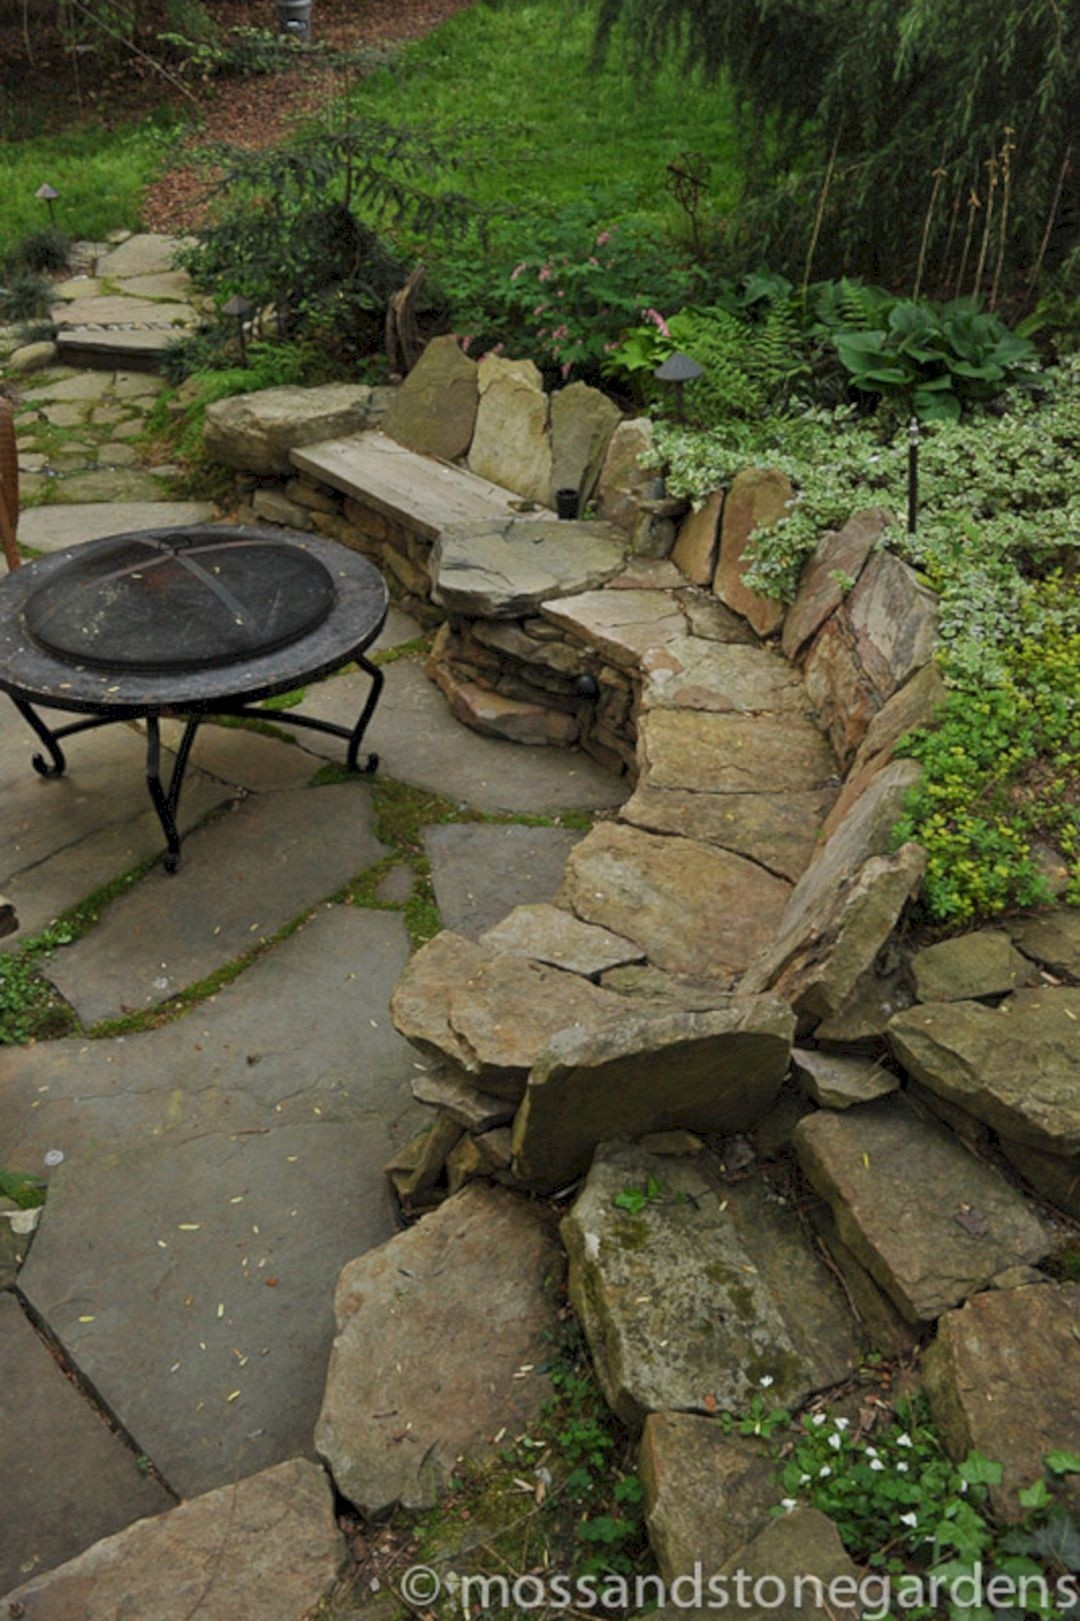 Delicieux Made In Stone Benches Is A Beautiful Composition That Will Perfectly Work  In The Garden. The Whole Present Itself Phenomenally Anywhere In The  Backyard, ...